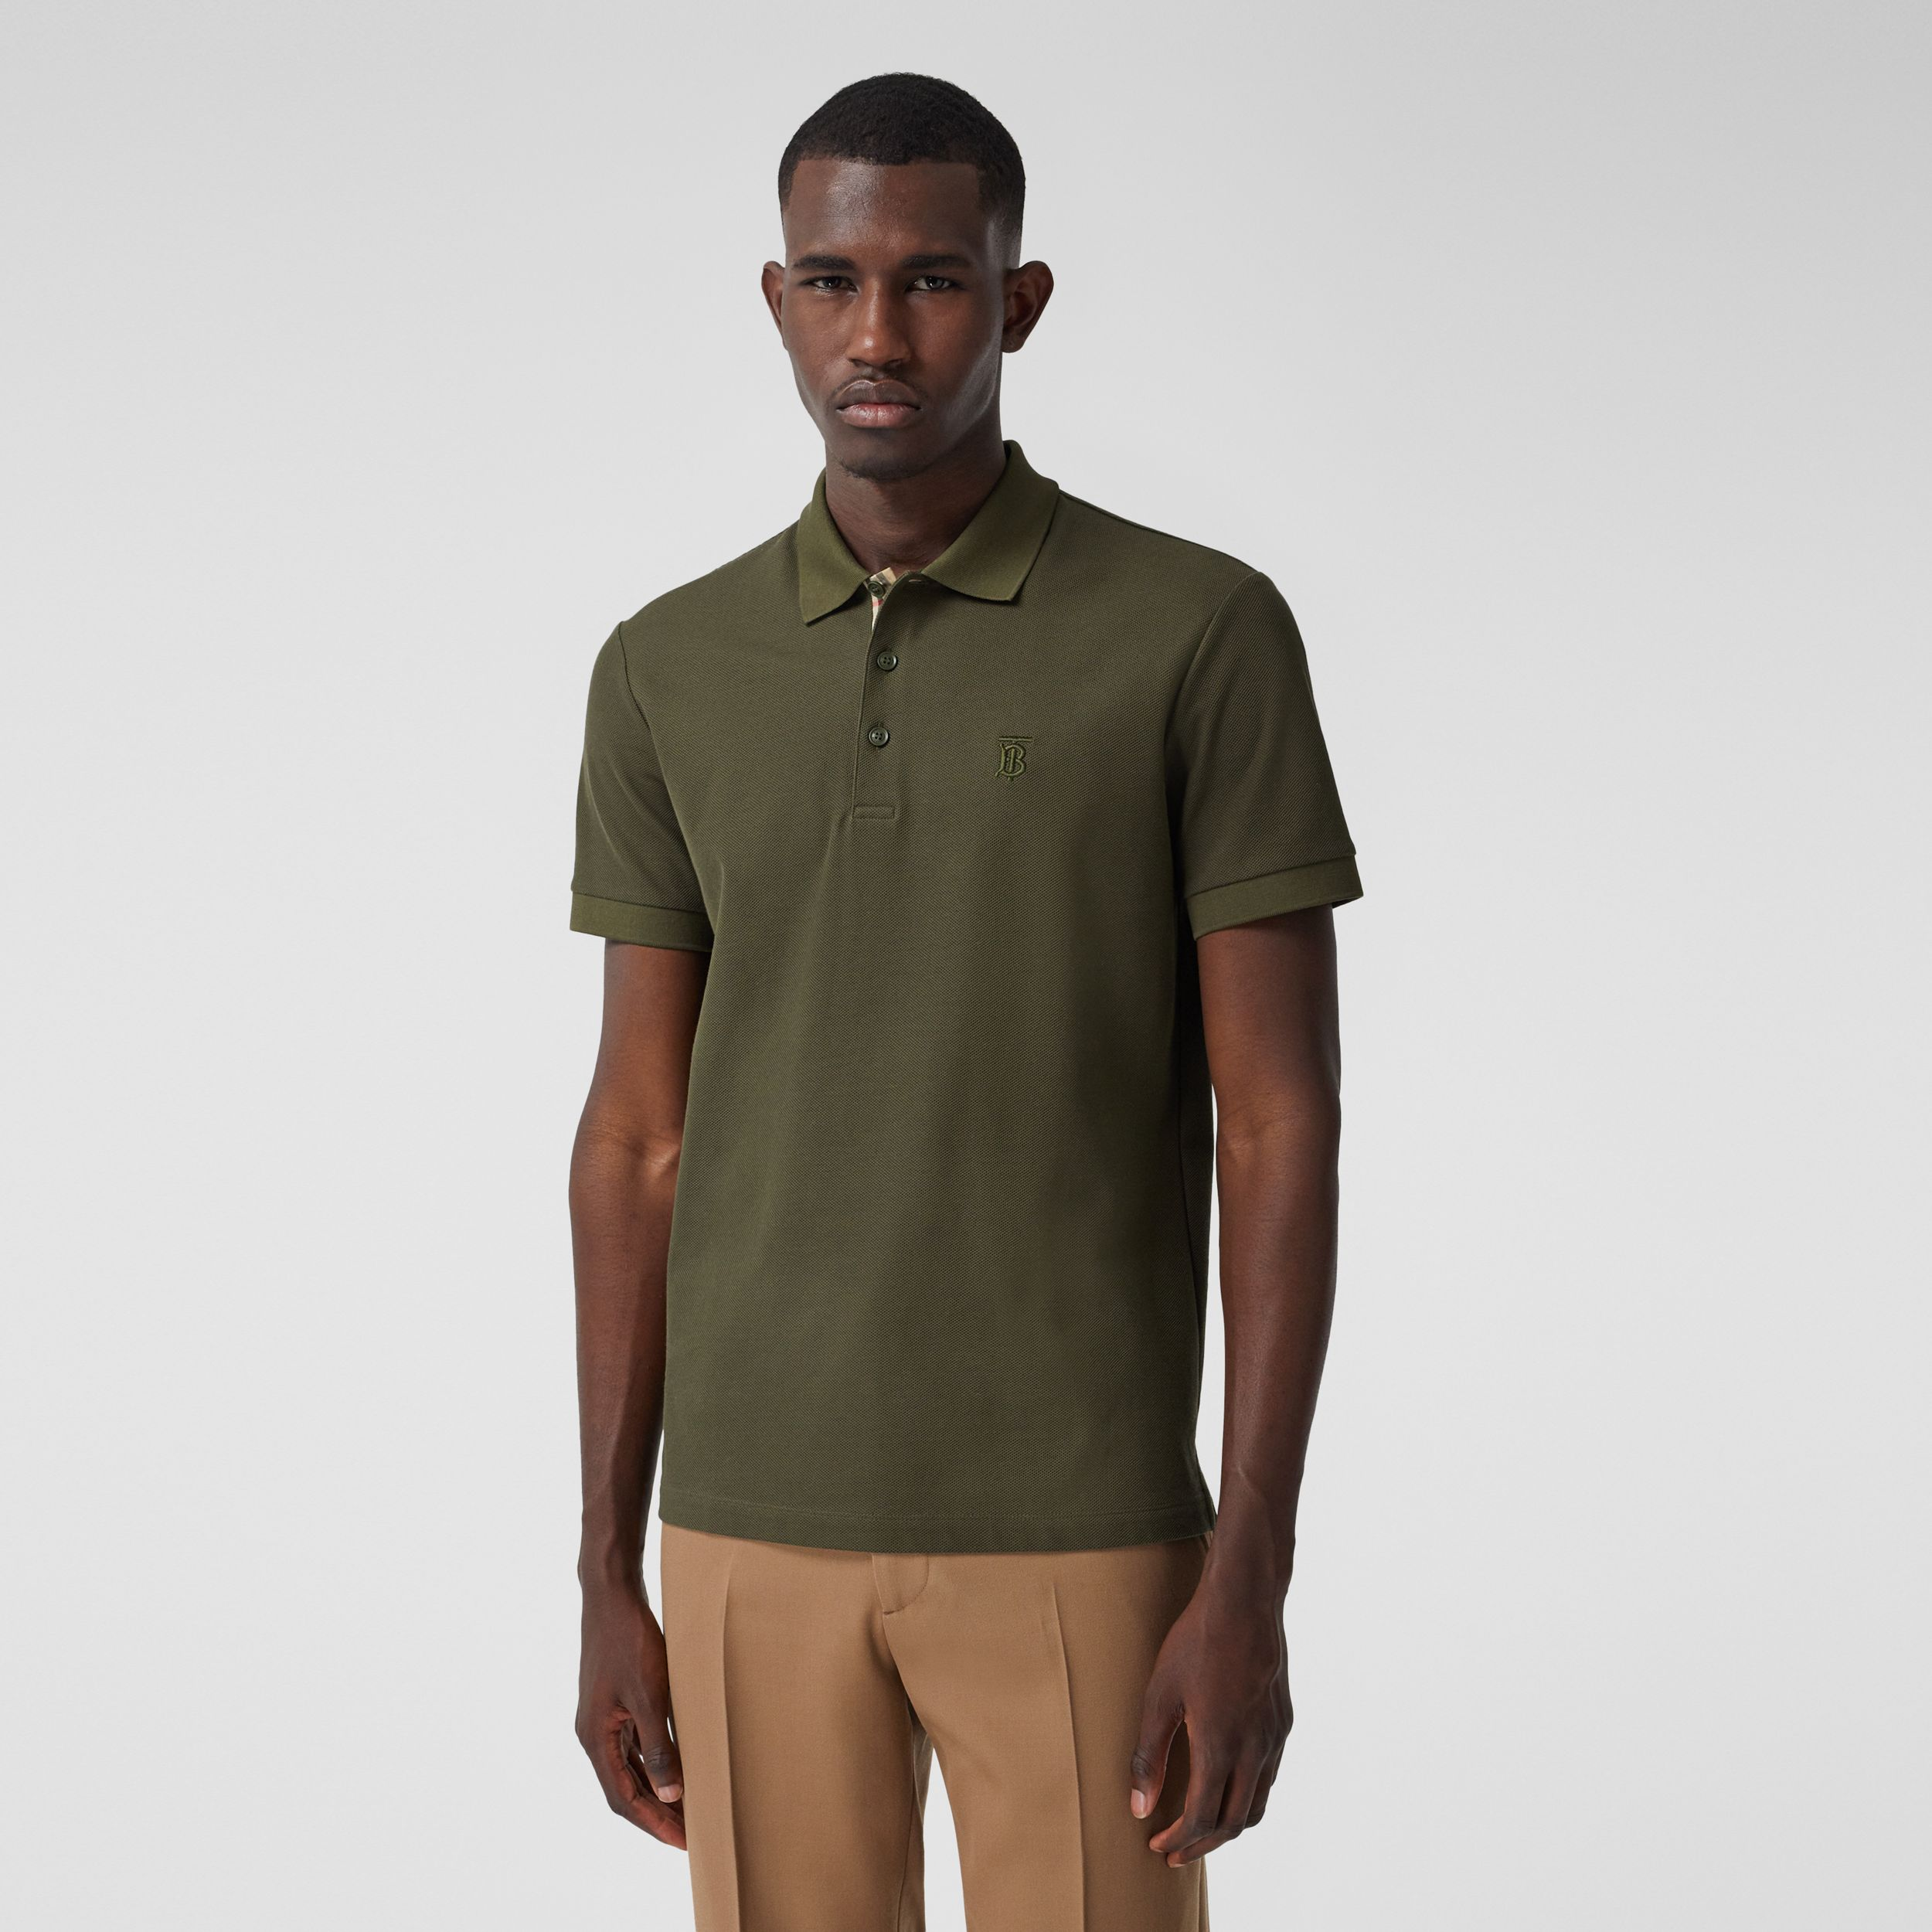 Monogram Motif Cotton Piqué Polo Shirt in Dark Olive - Men | Burberry - 1